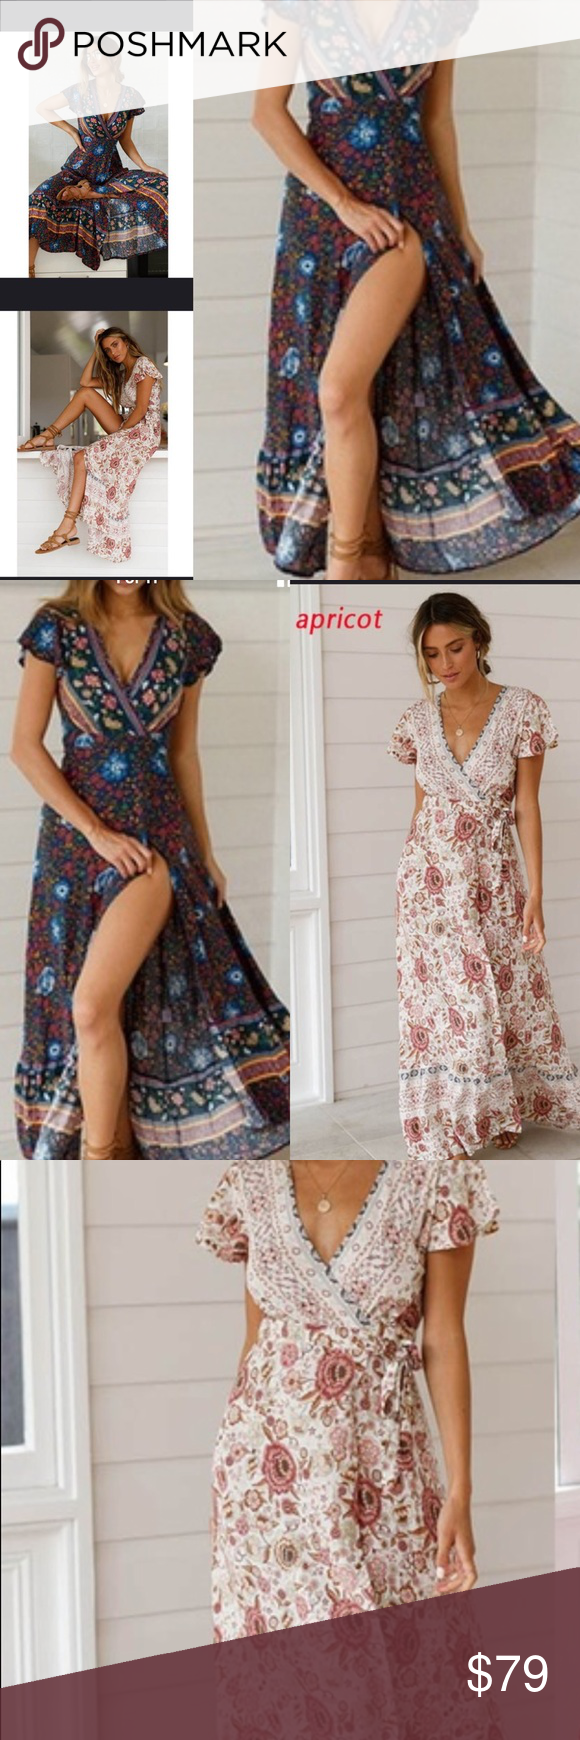 ae208aff12 Bohemian Maxi Floral Wrap Dress This flowy wrap-around dress is perfect for  festivals